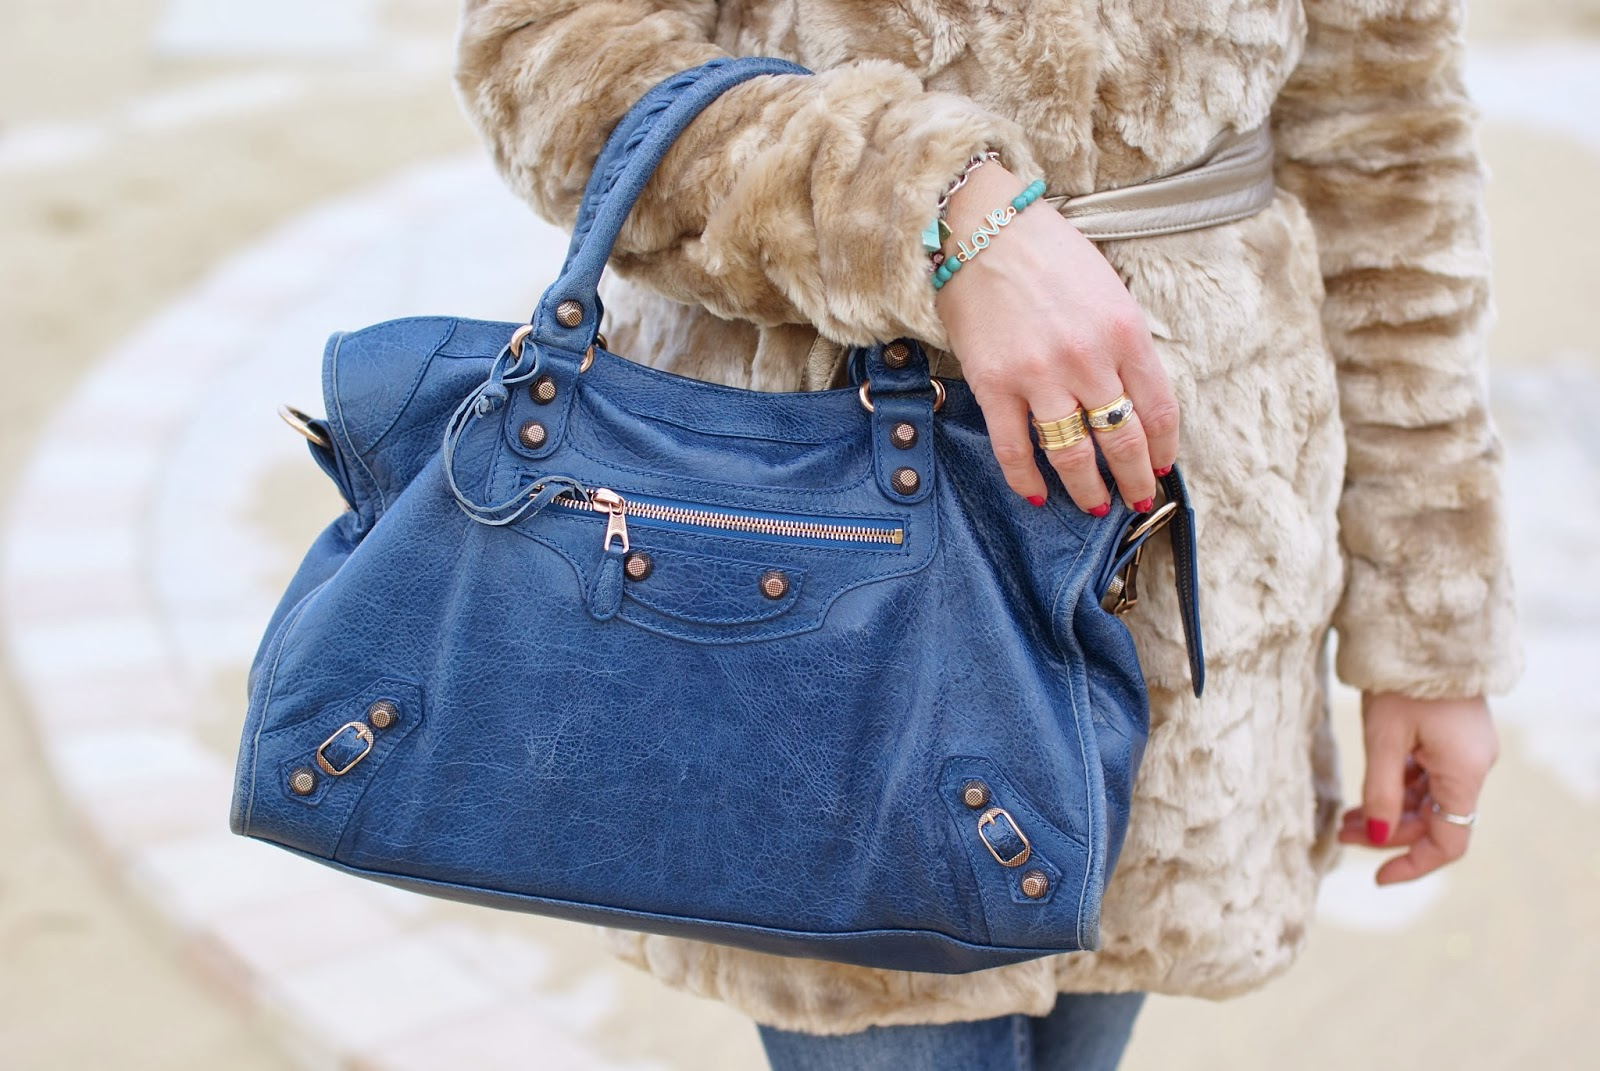 Balenciaga City in cobalt blue, Fashion and Cookies, fashion blogger